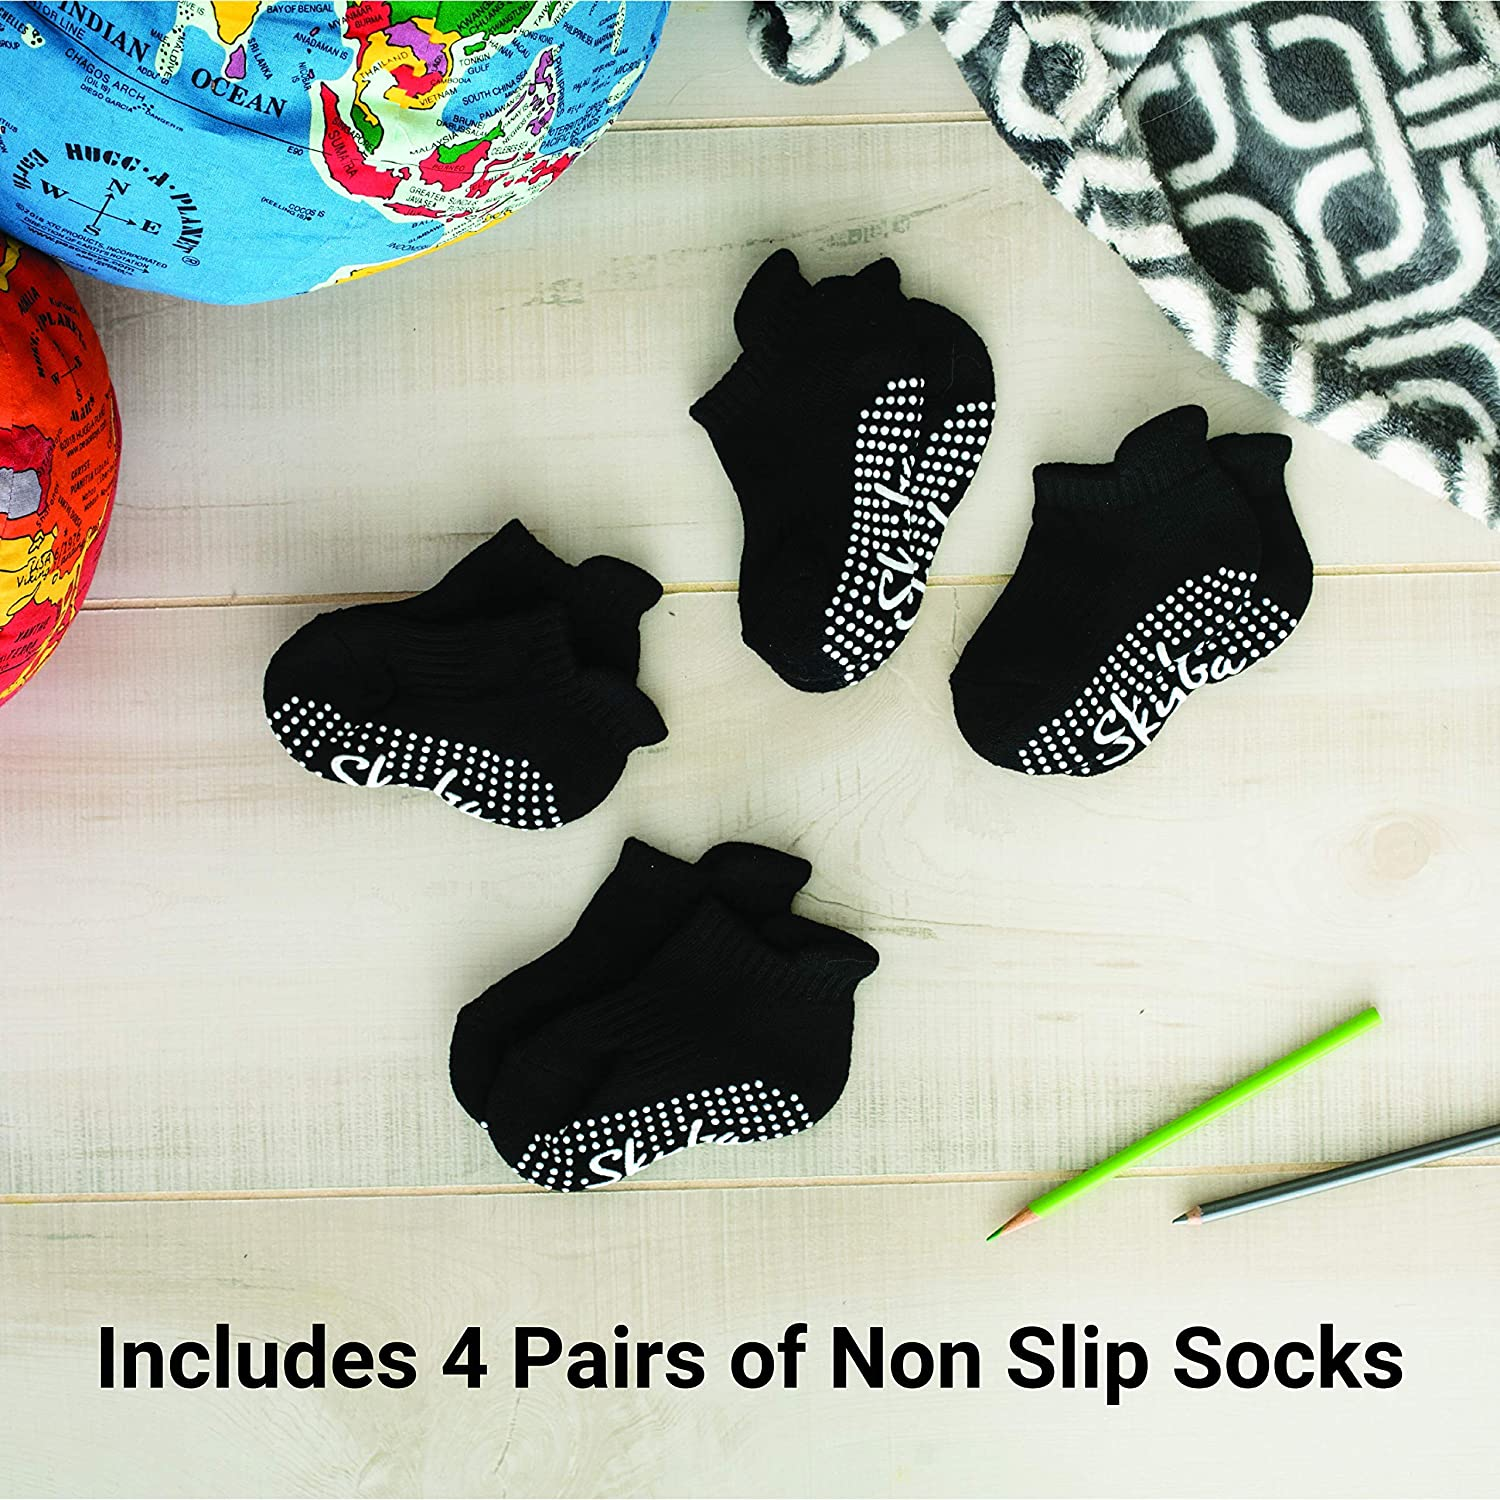 Kids Children, Skyba Non Slip Socks Anti Skid Grip for